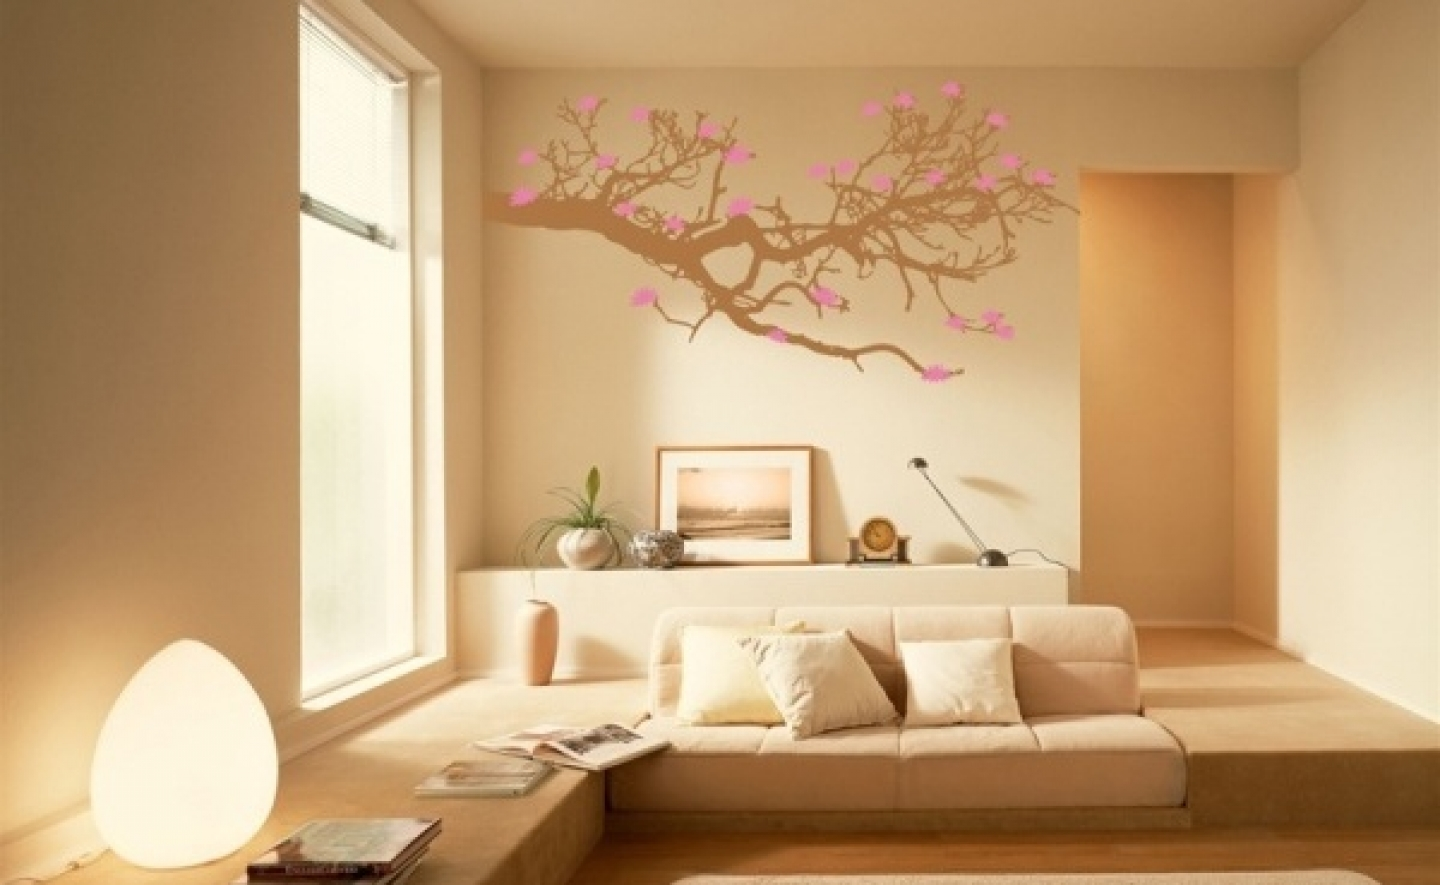 Design a wall with pictures design for wall painting design ideas 1440x885